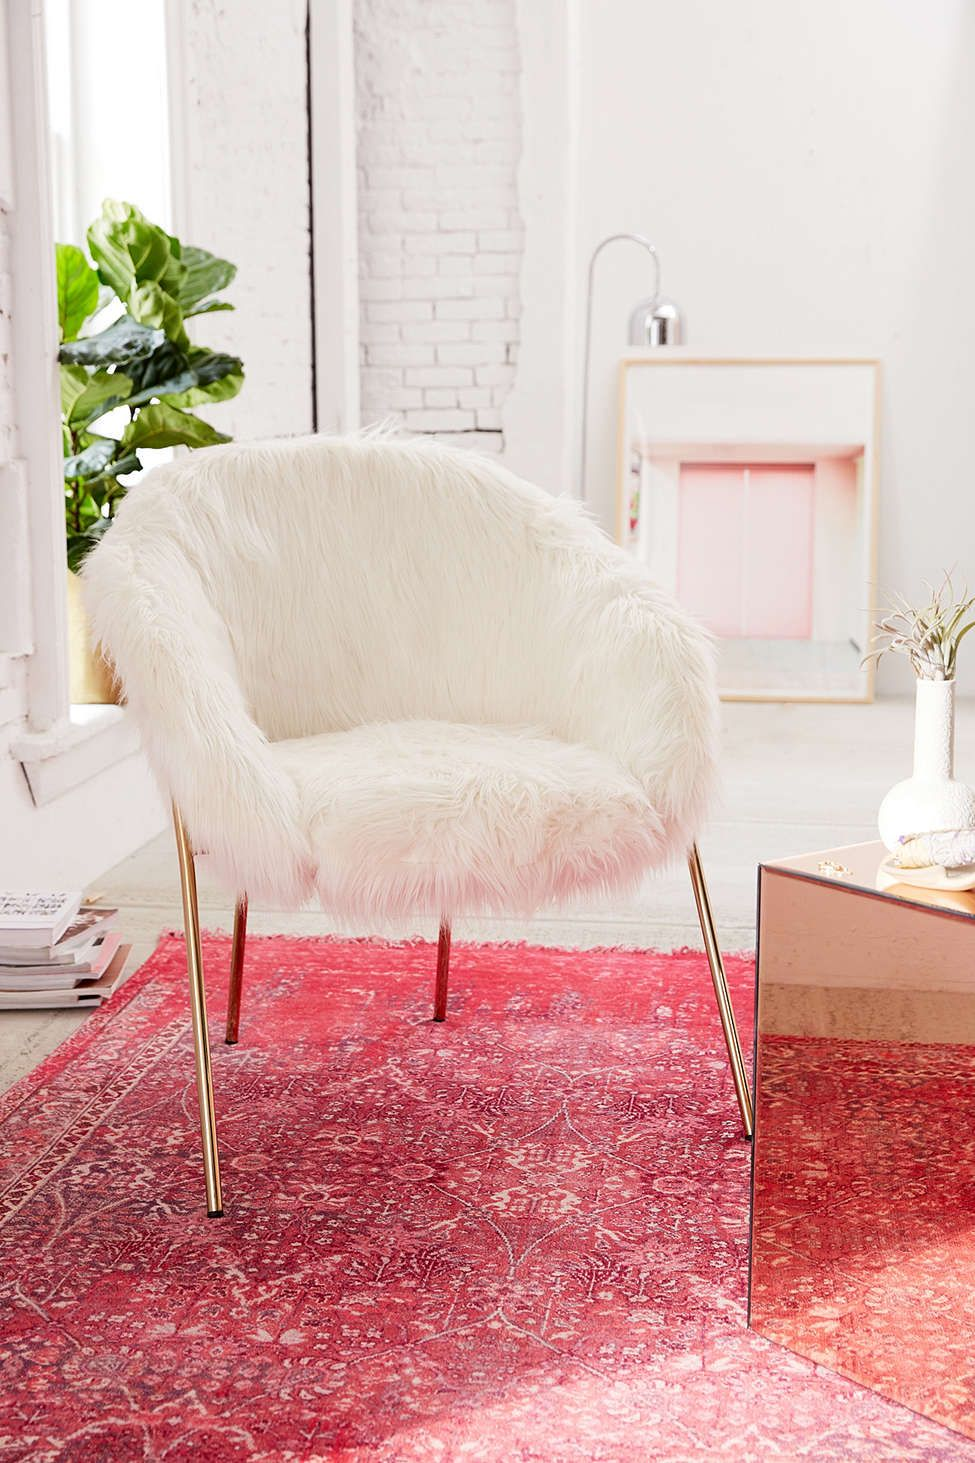 Faux Fur Chair | Interior Design | Pinterest | Occasional chairs ...